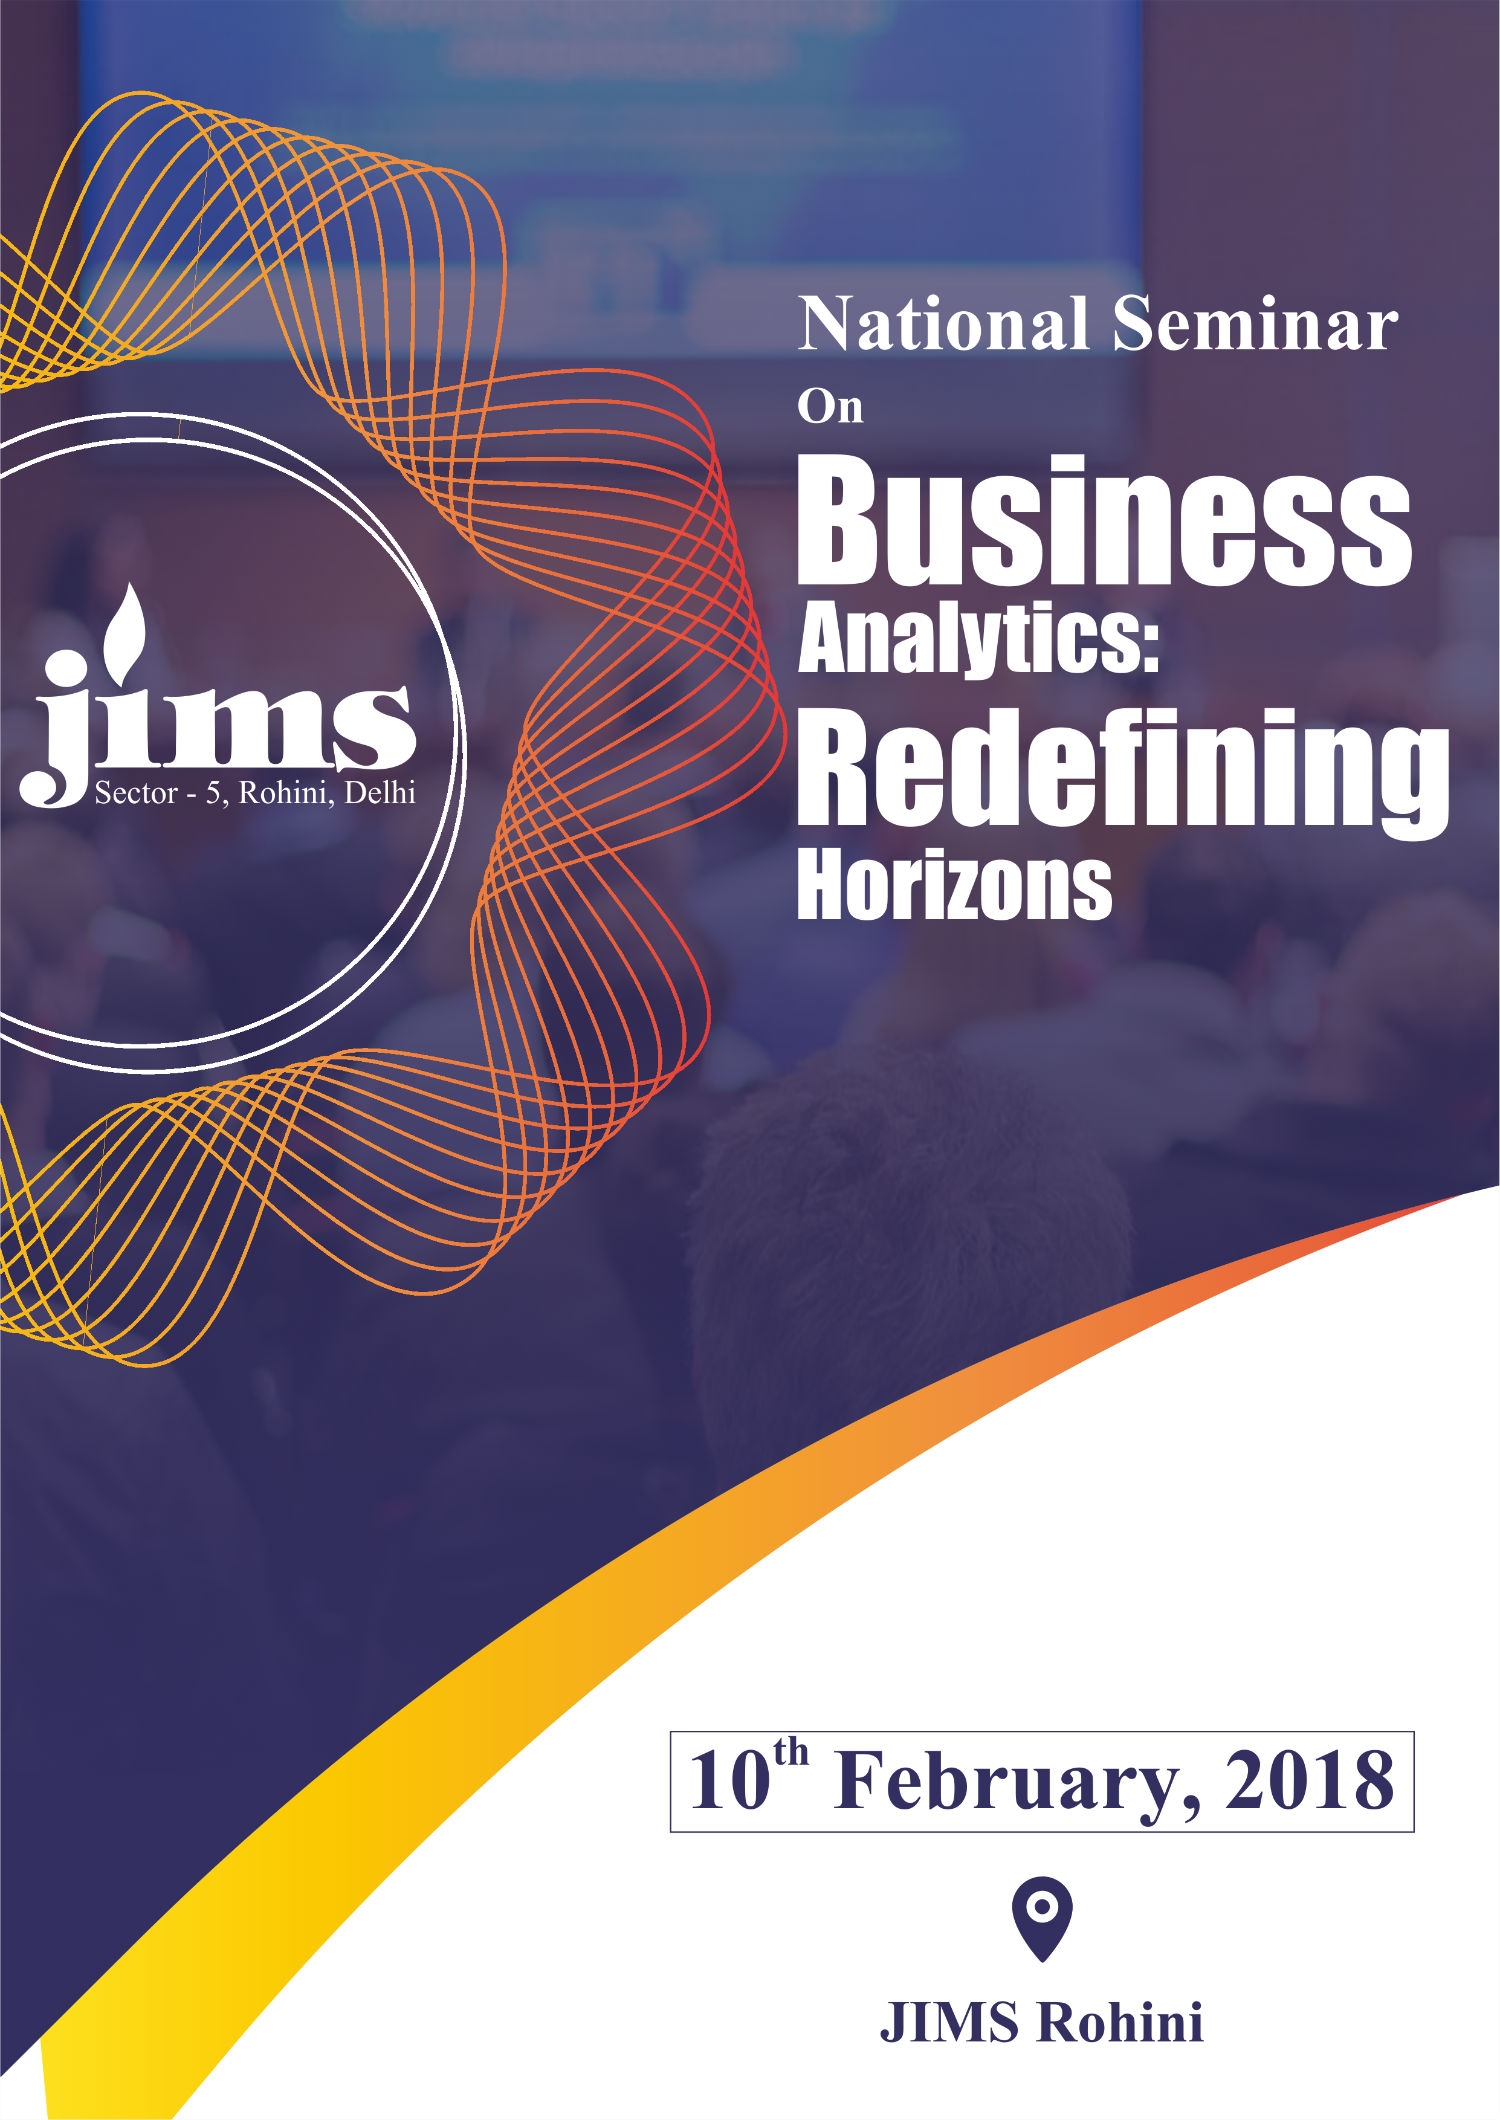 JIMS is organizing a NATIONAL SEMINAR On Business Analytics Redefining Horizons